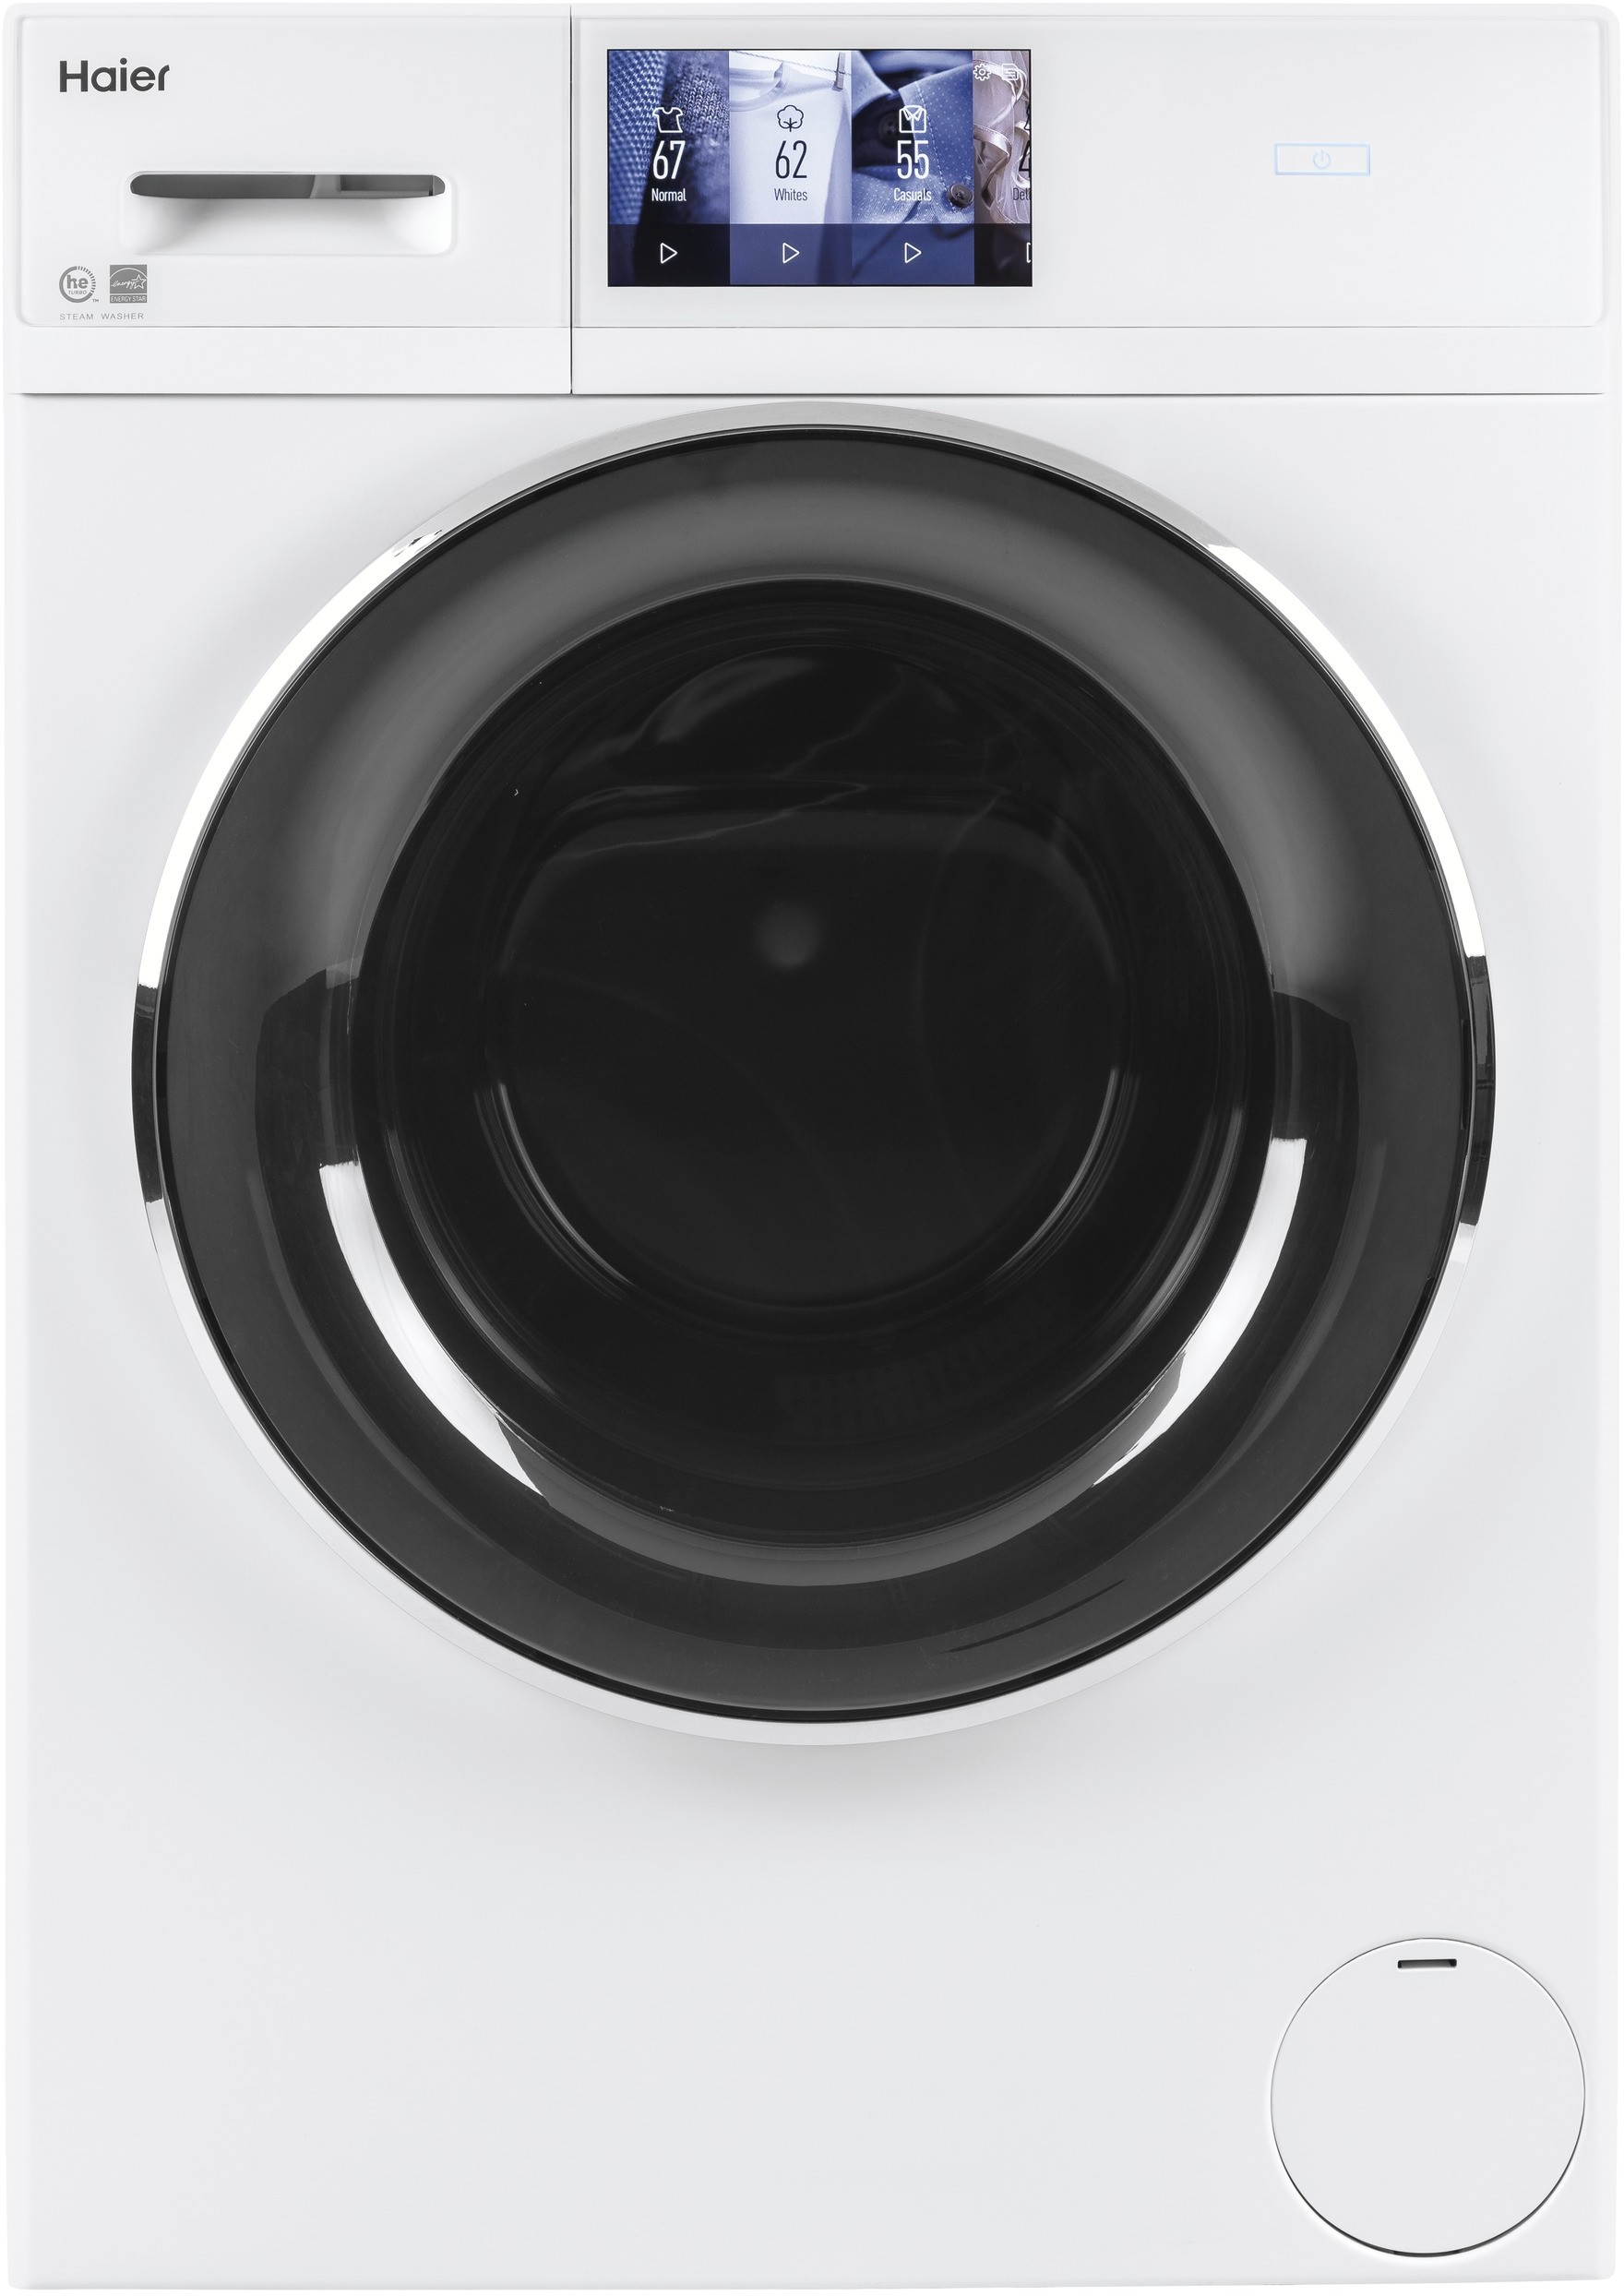 Haier Qfw150ssnww 24 Inch Smart Front Load Washer With 16 Cycles